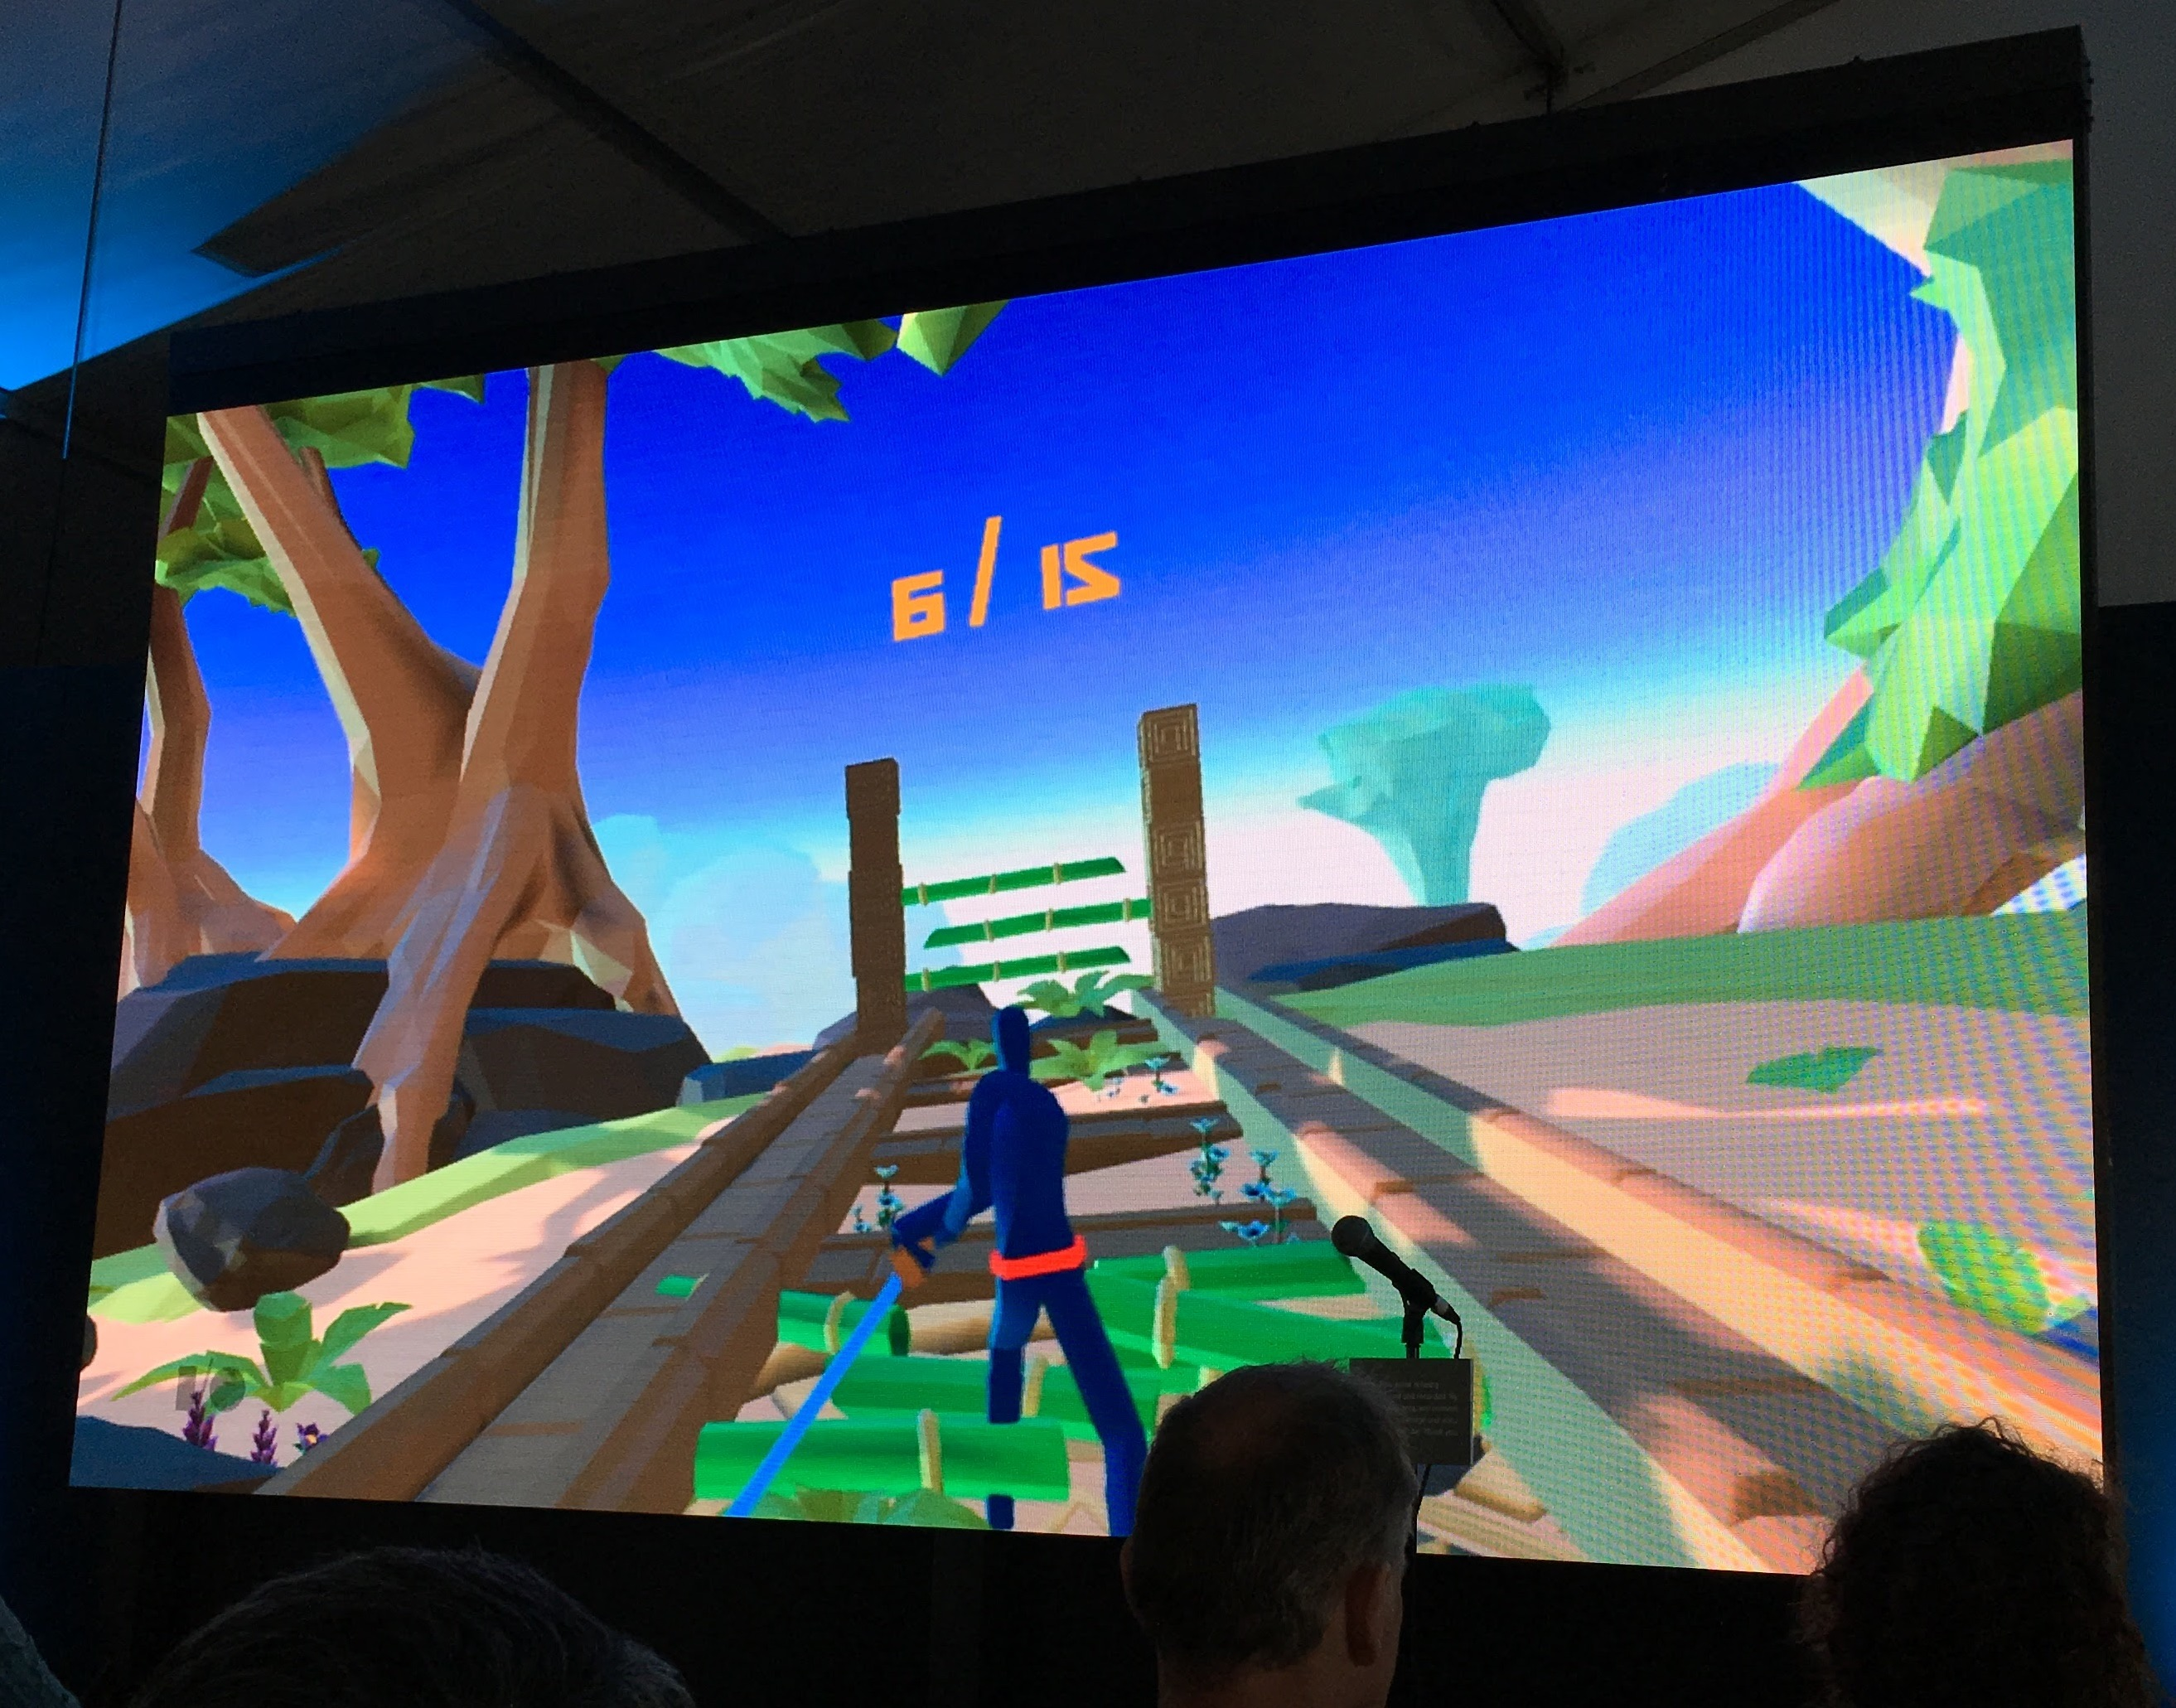 A game involving a ninja that Schell Games developed for Google Daydream.